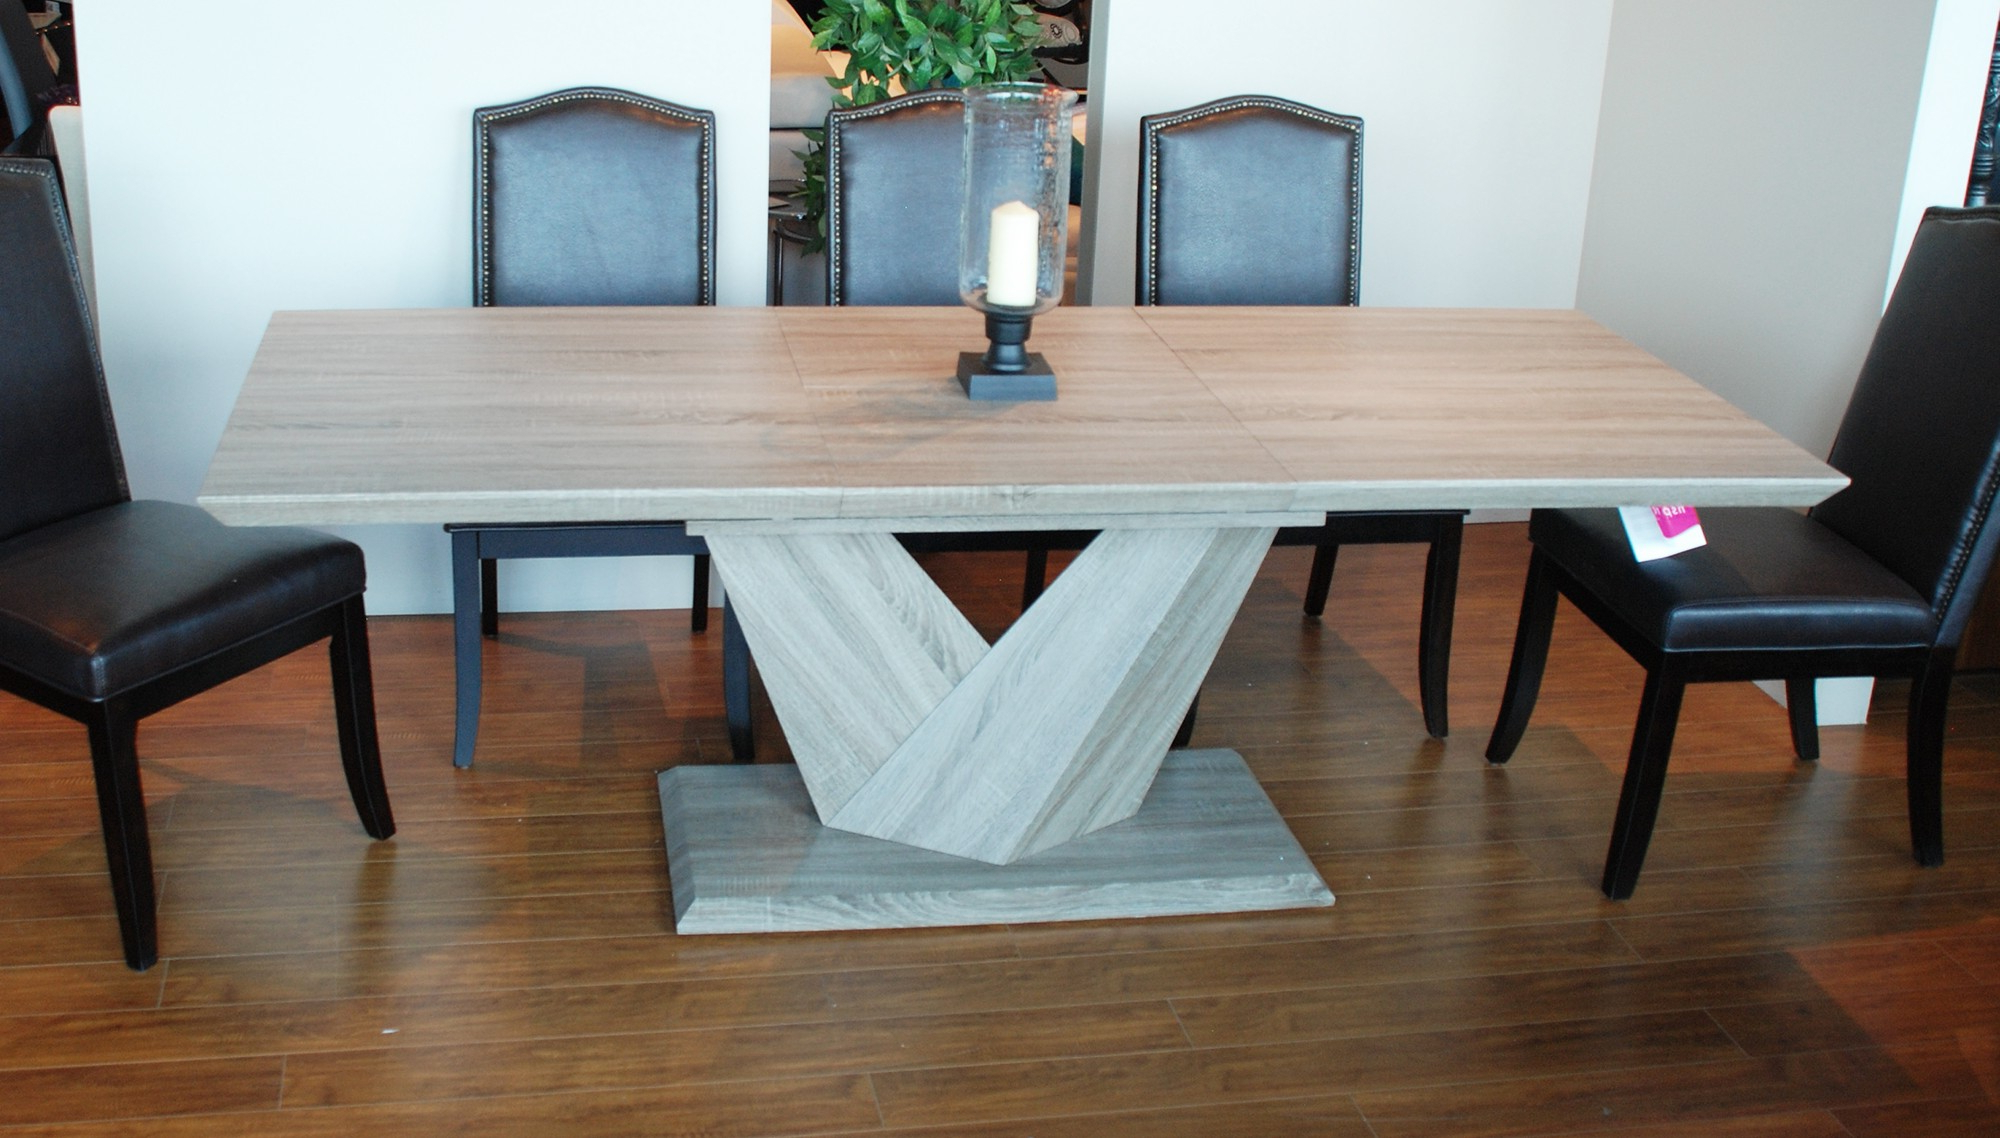 Eclipse Dining Tables Intended For Widely Used Eclipse Rectangular Dining Table In Washed Oak – Dining (View 2 of 30)